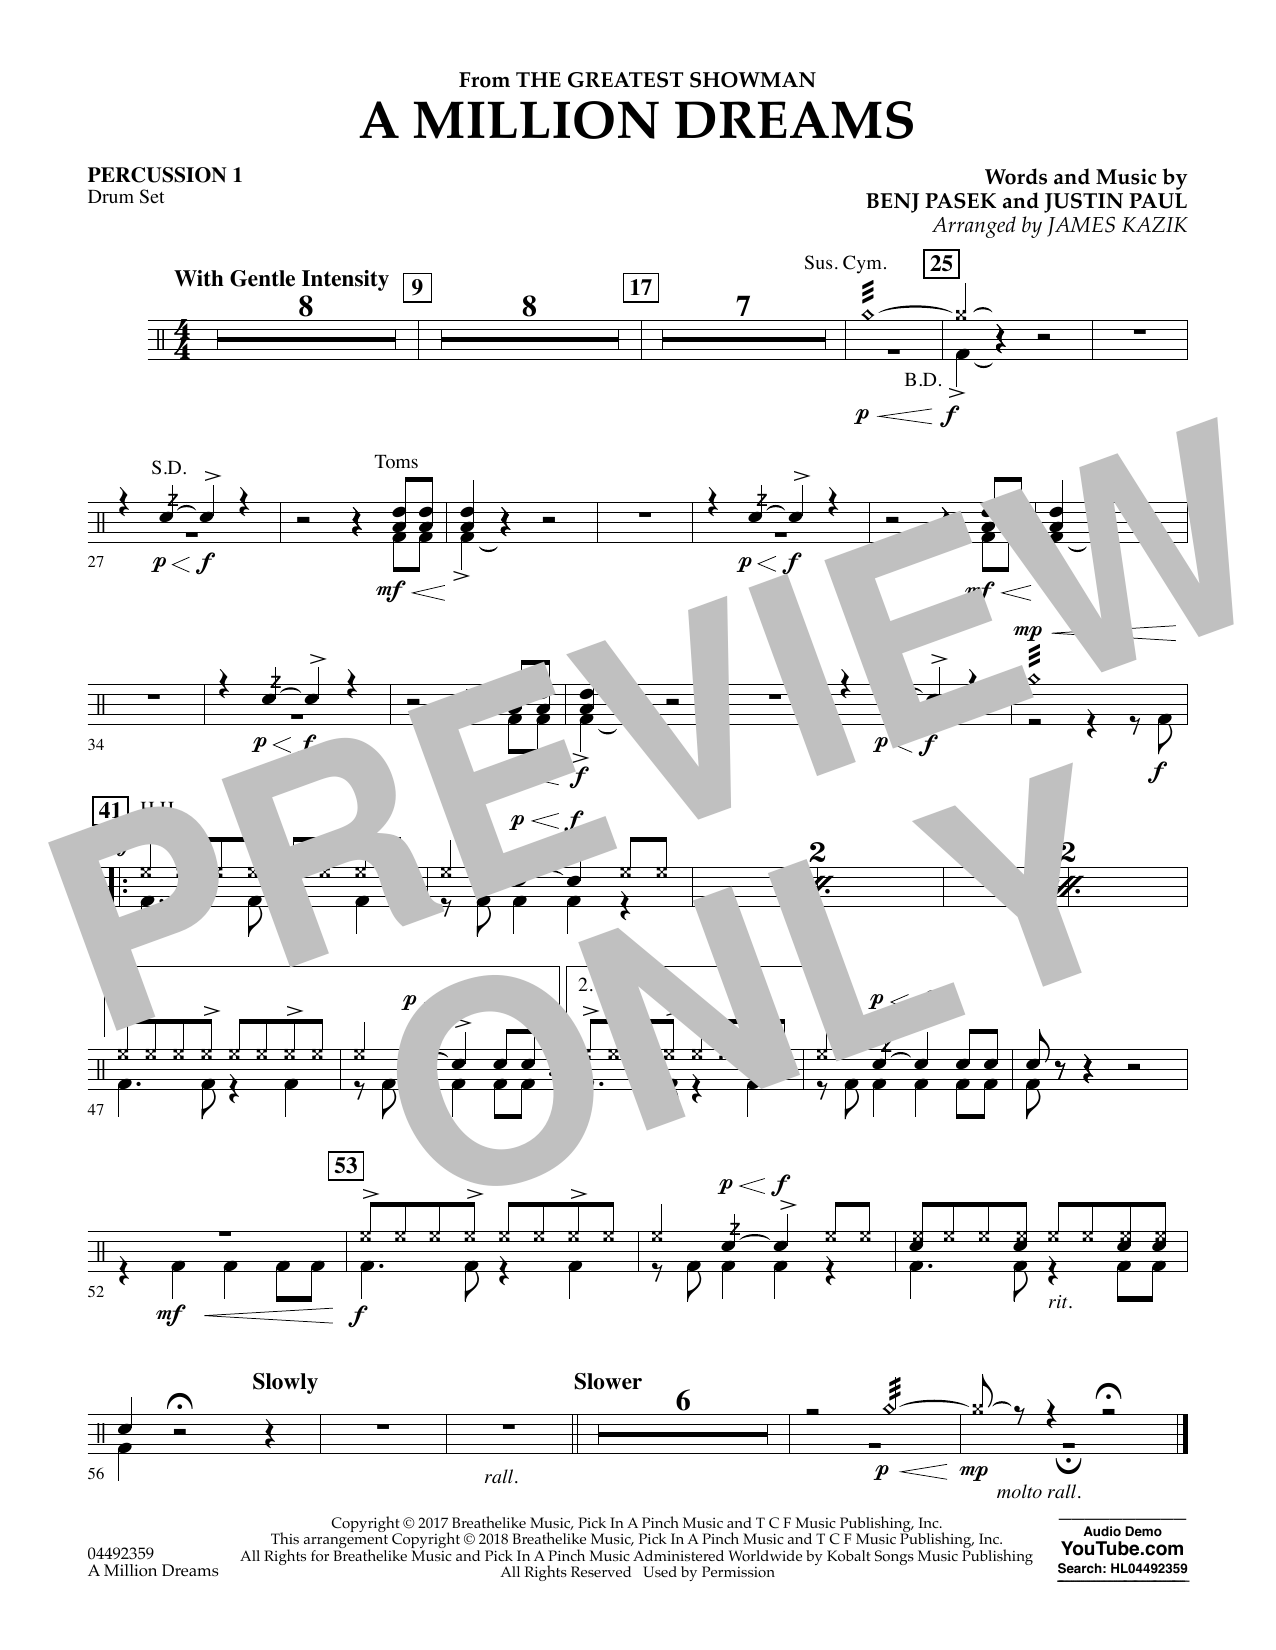 A Million Dreams (from The Greatest Showman) (arr. James Kazik) - Percussion 1 (Orchestra)